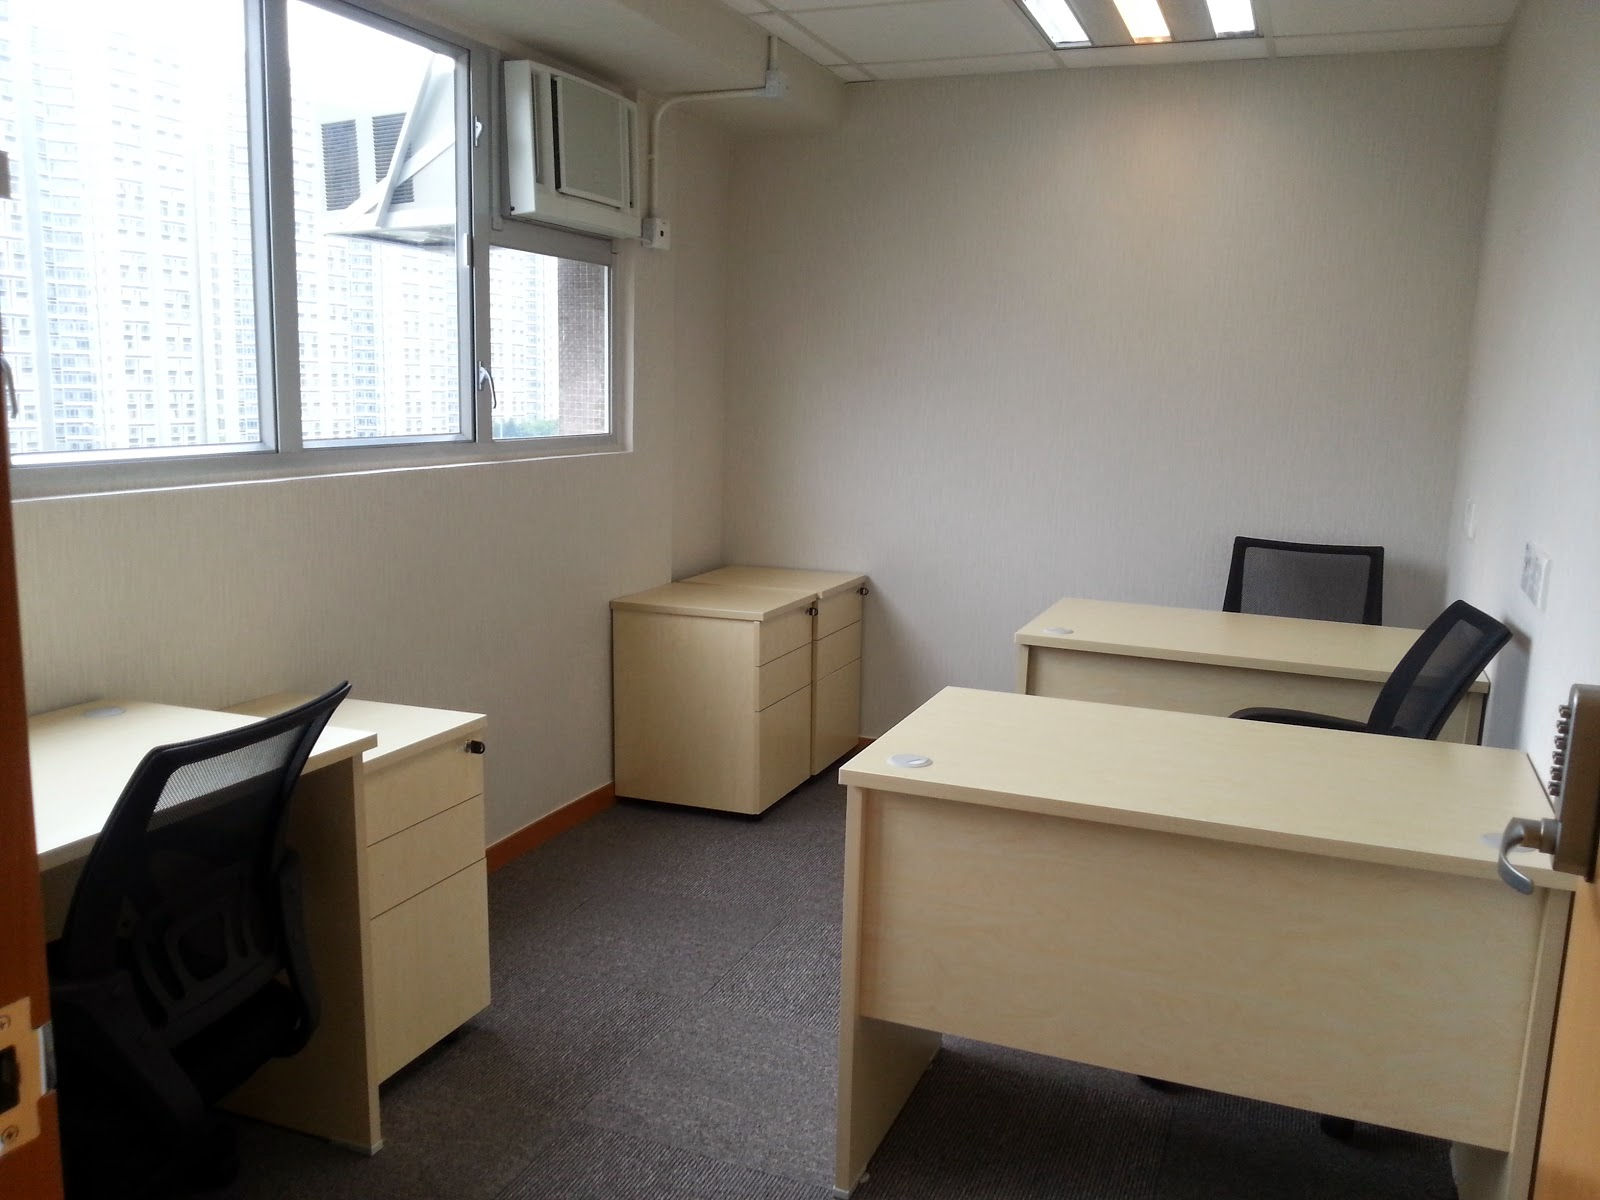 office,room,furniture,real estate,desk